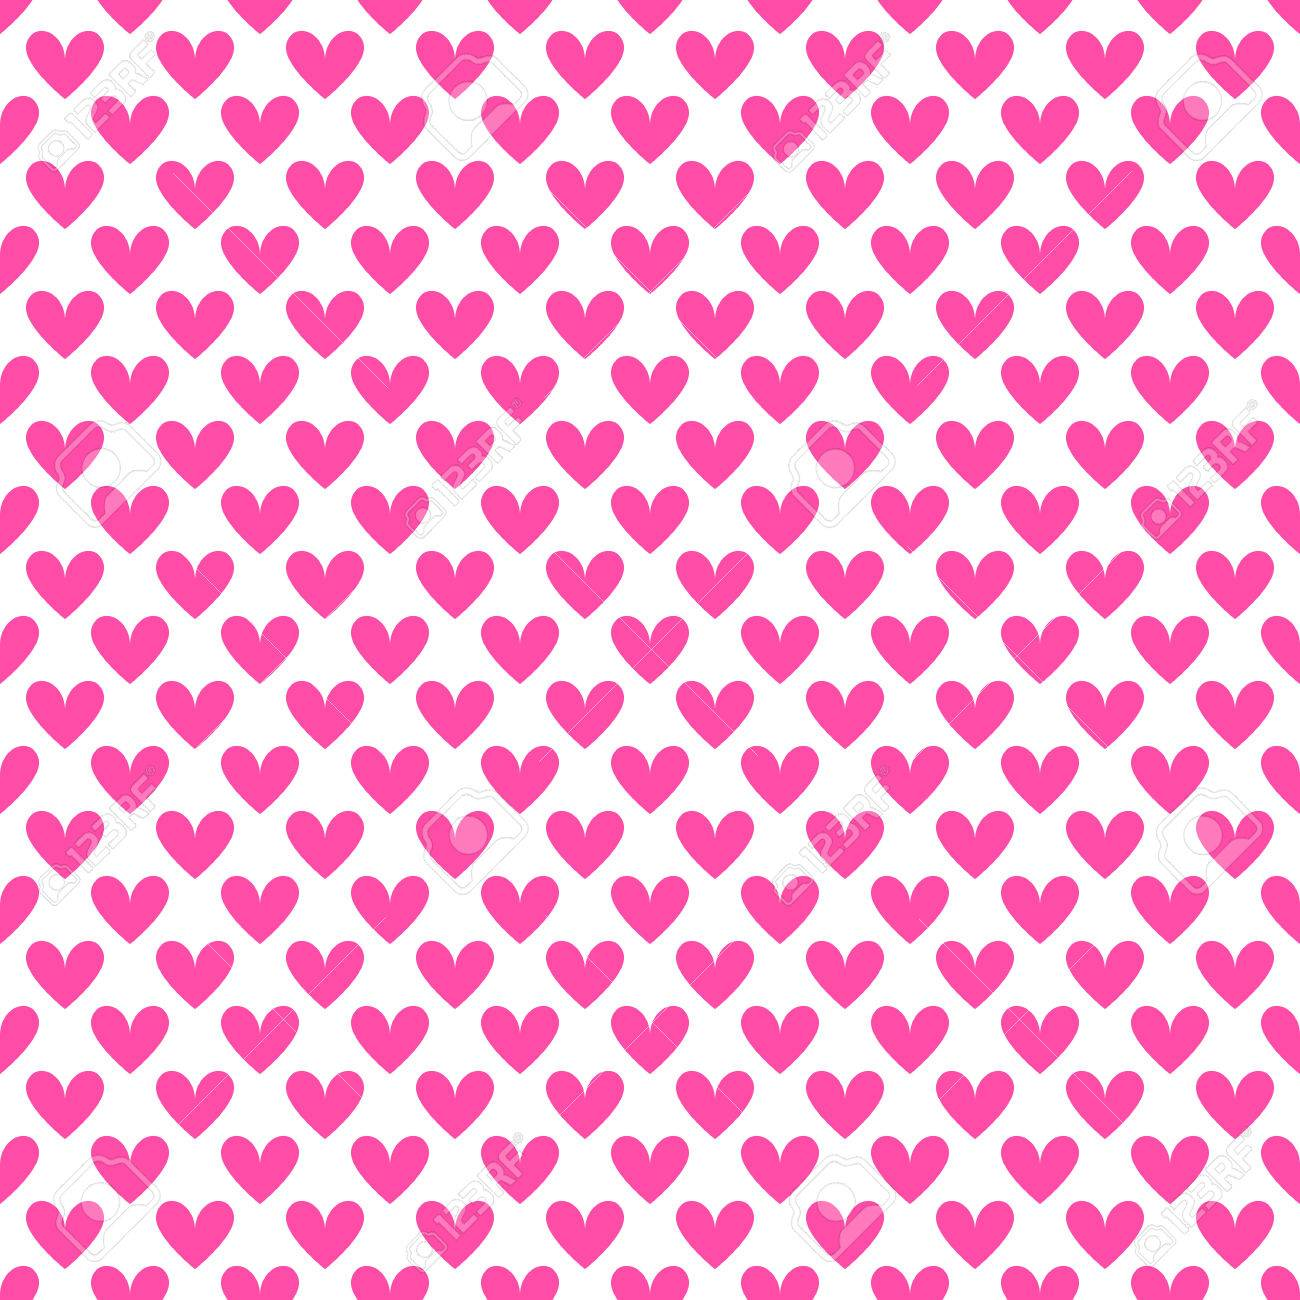 Heart Shape Vector Seamless Pattern (tiling). Pink And White ...